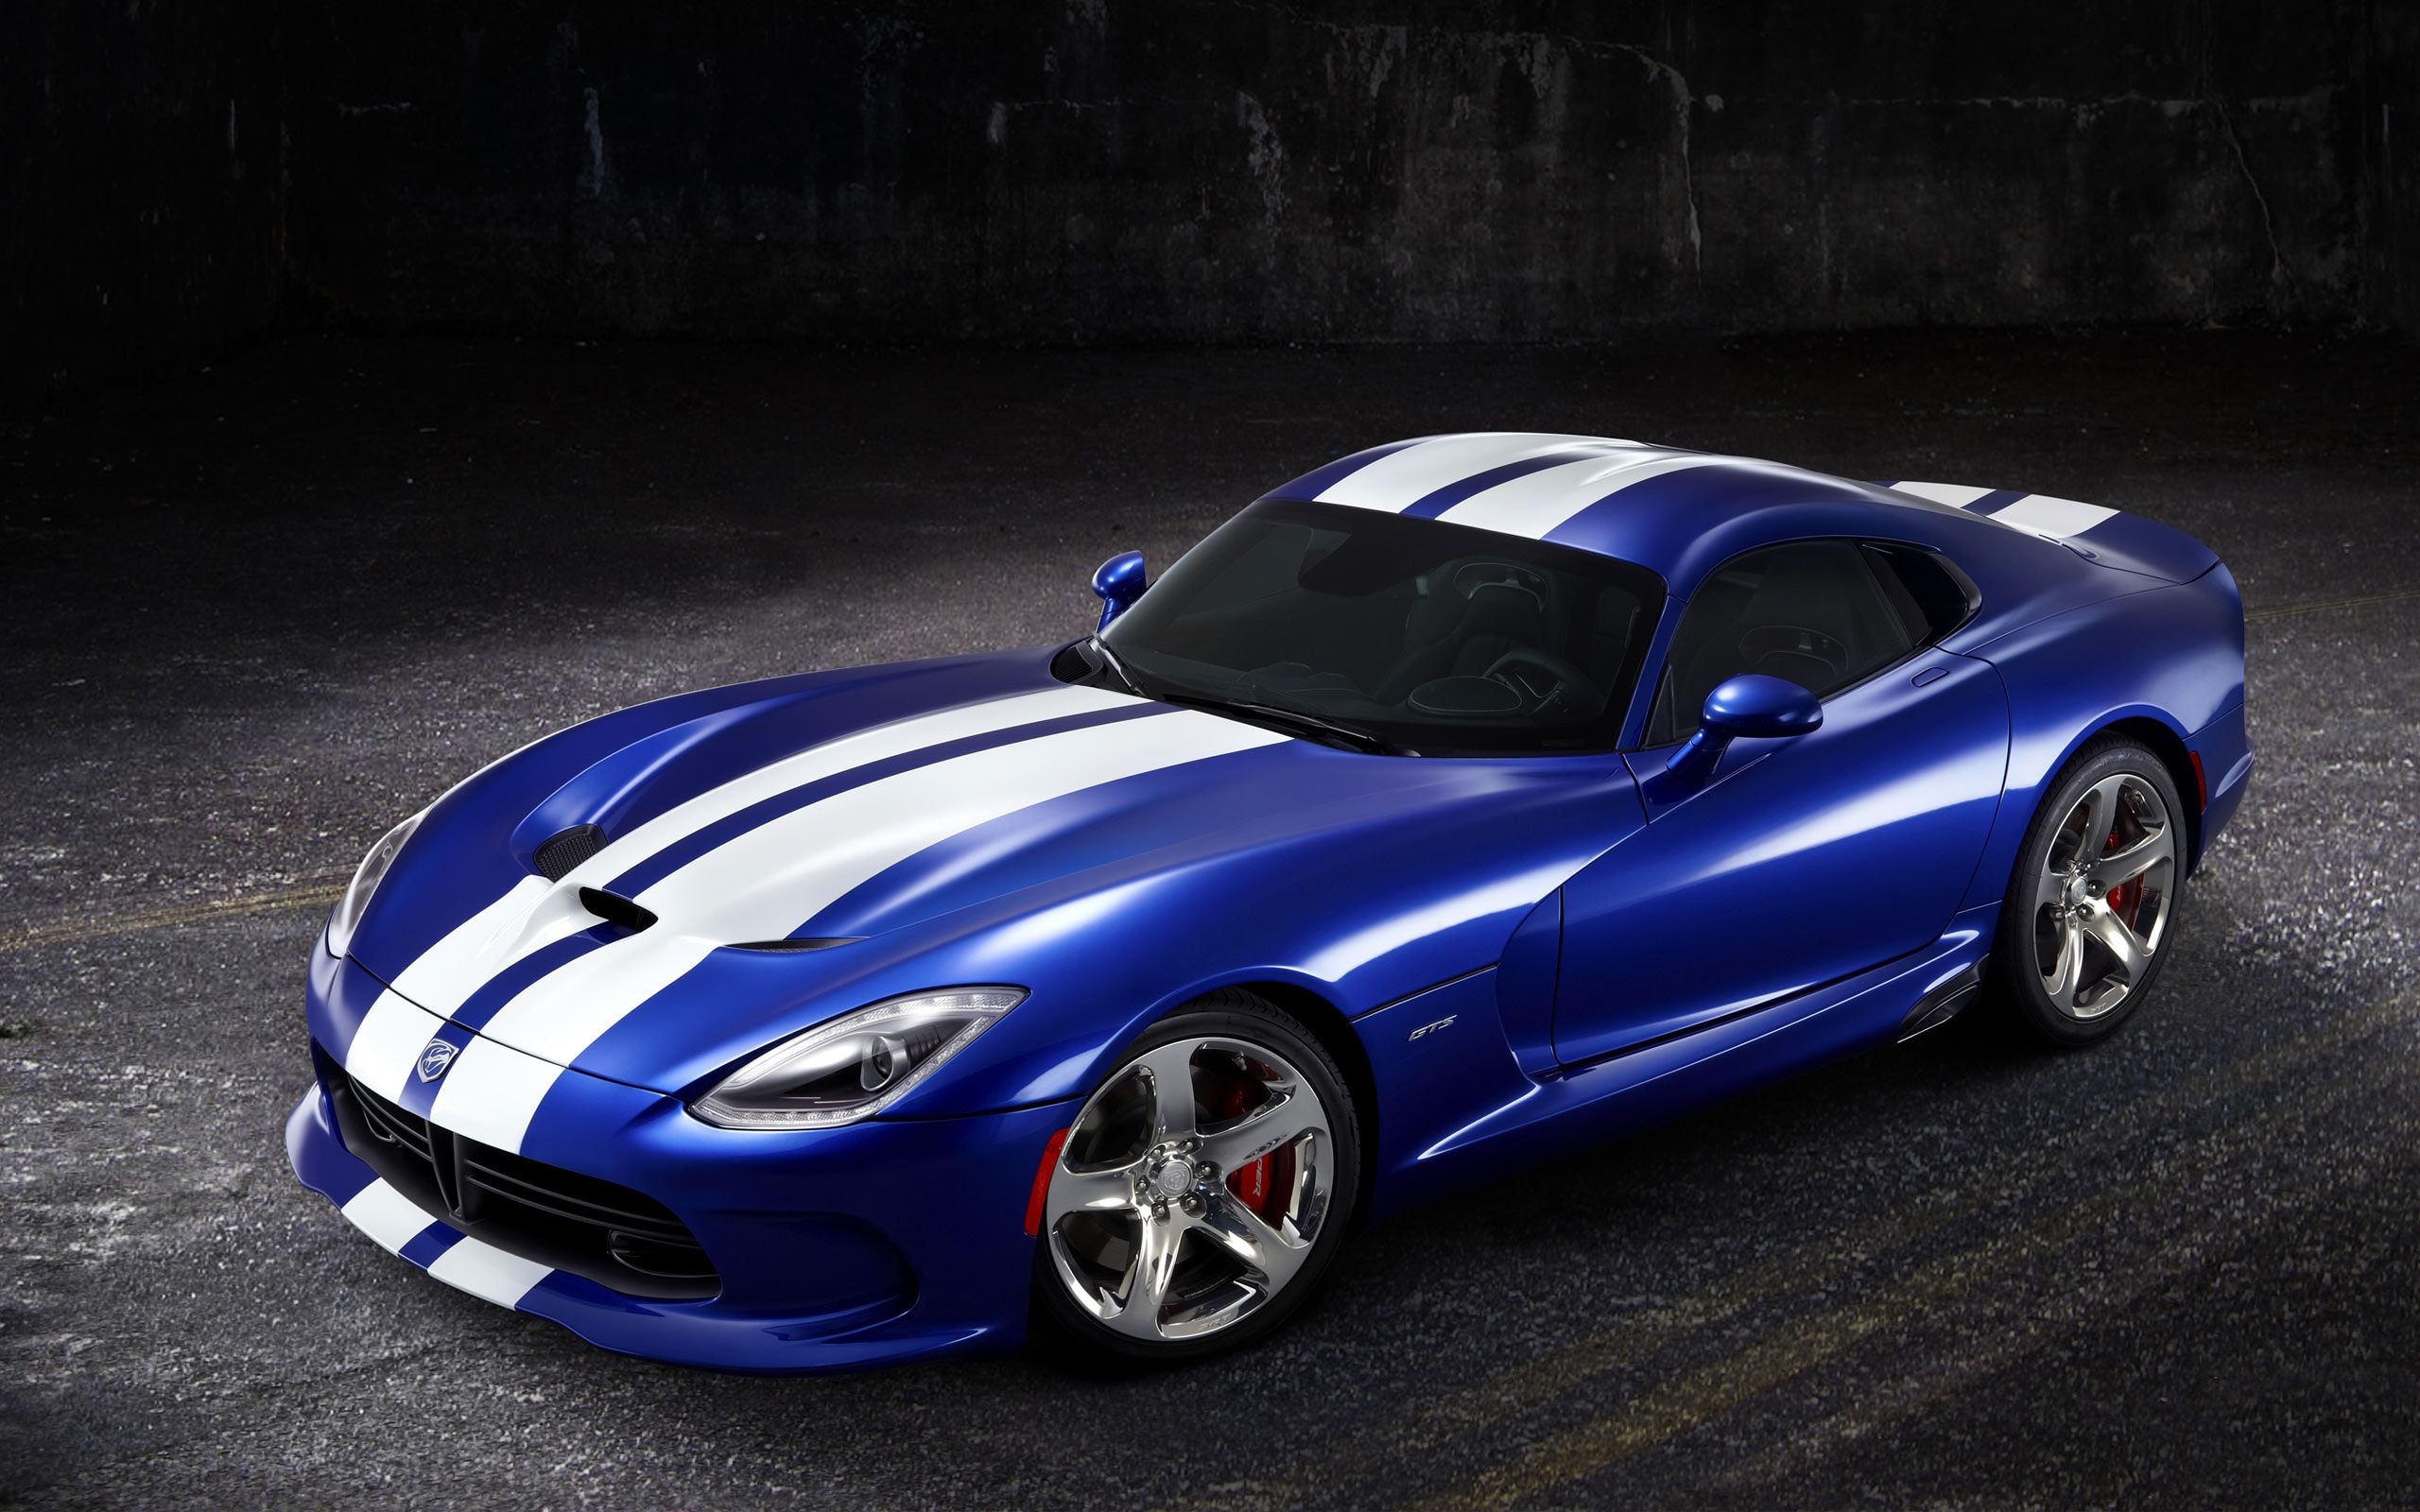 Dodge viper hd wallpapers backgrounds feelgrafix com pinterest dodge viper car photos and wallpaper backgrounds